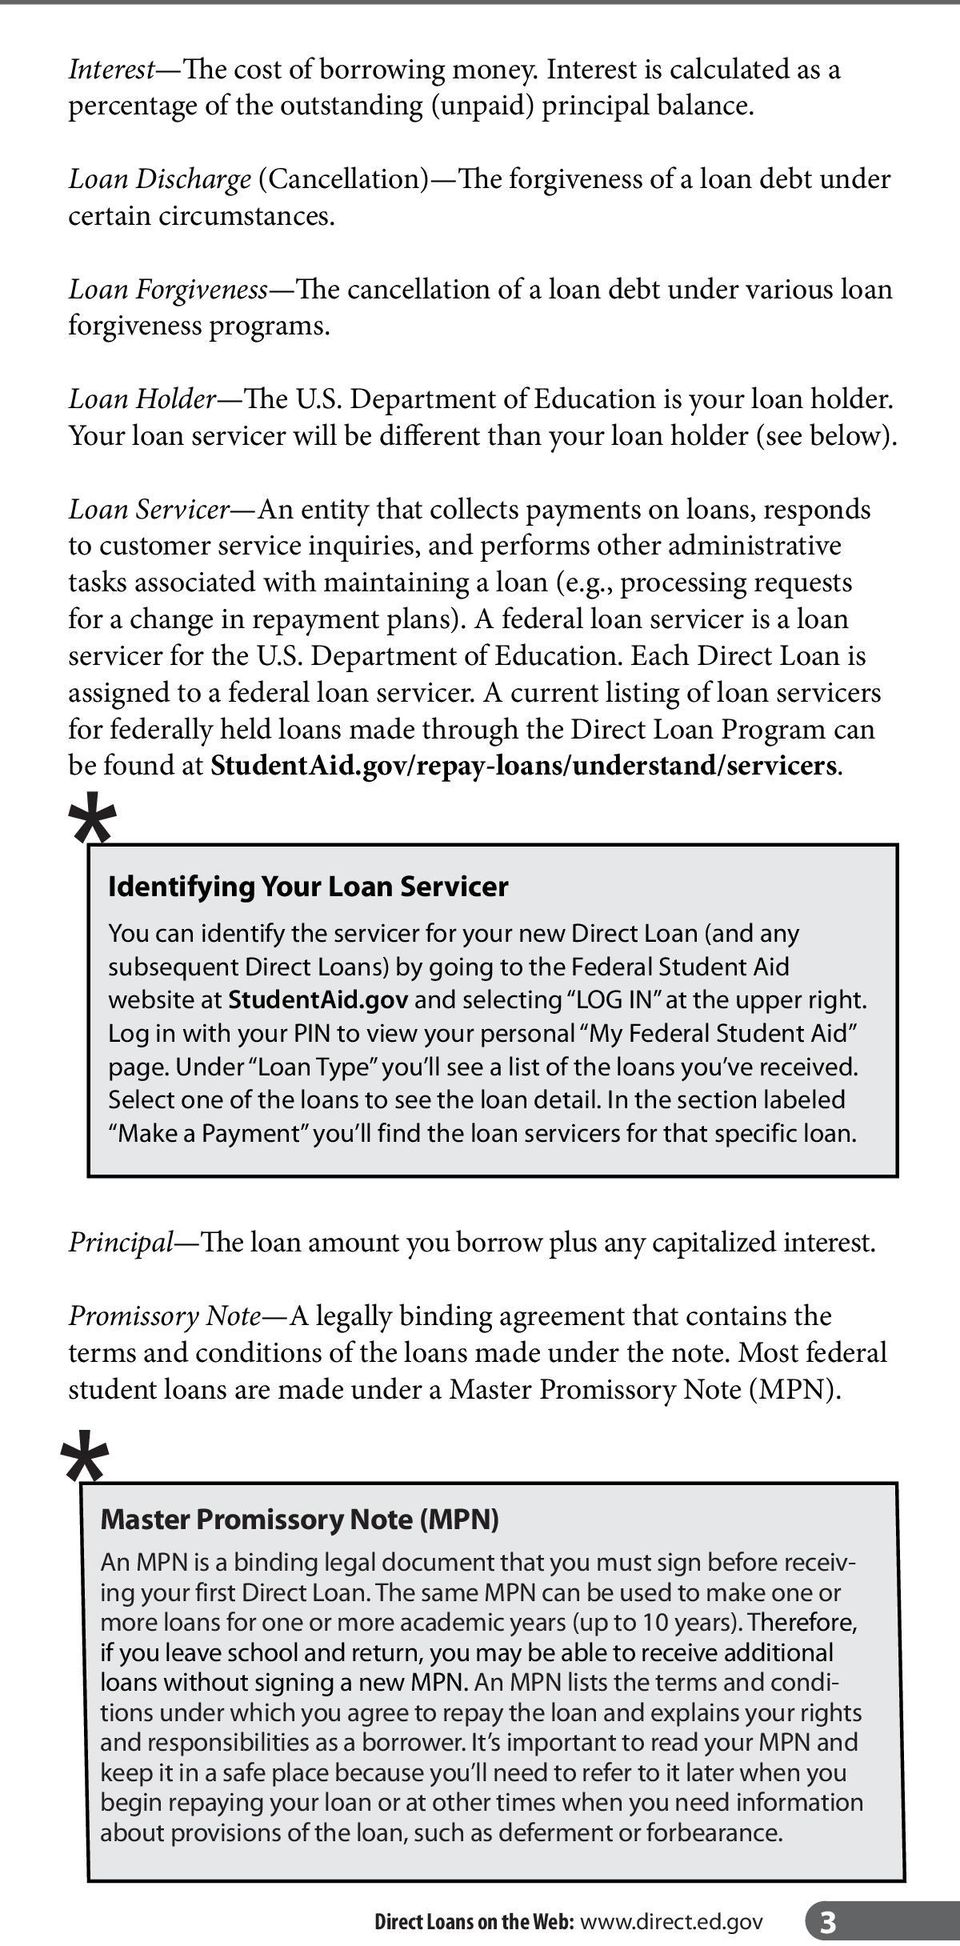 Department of Education is your loan holder. Your loan servicer will be different than your loan holder (see below).